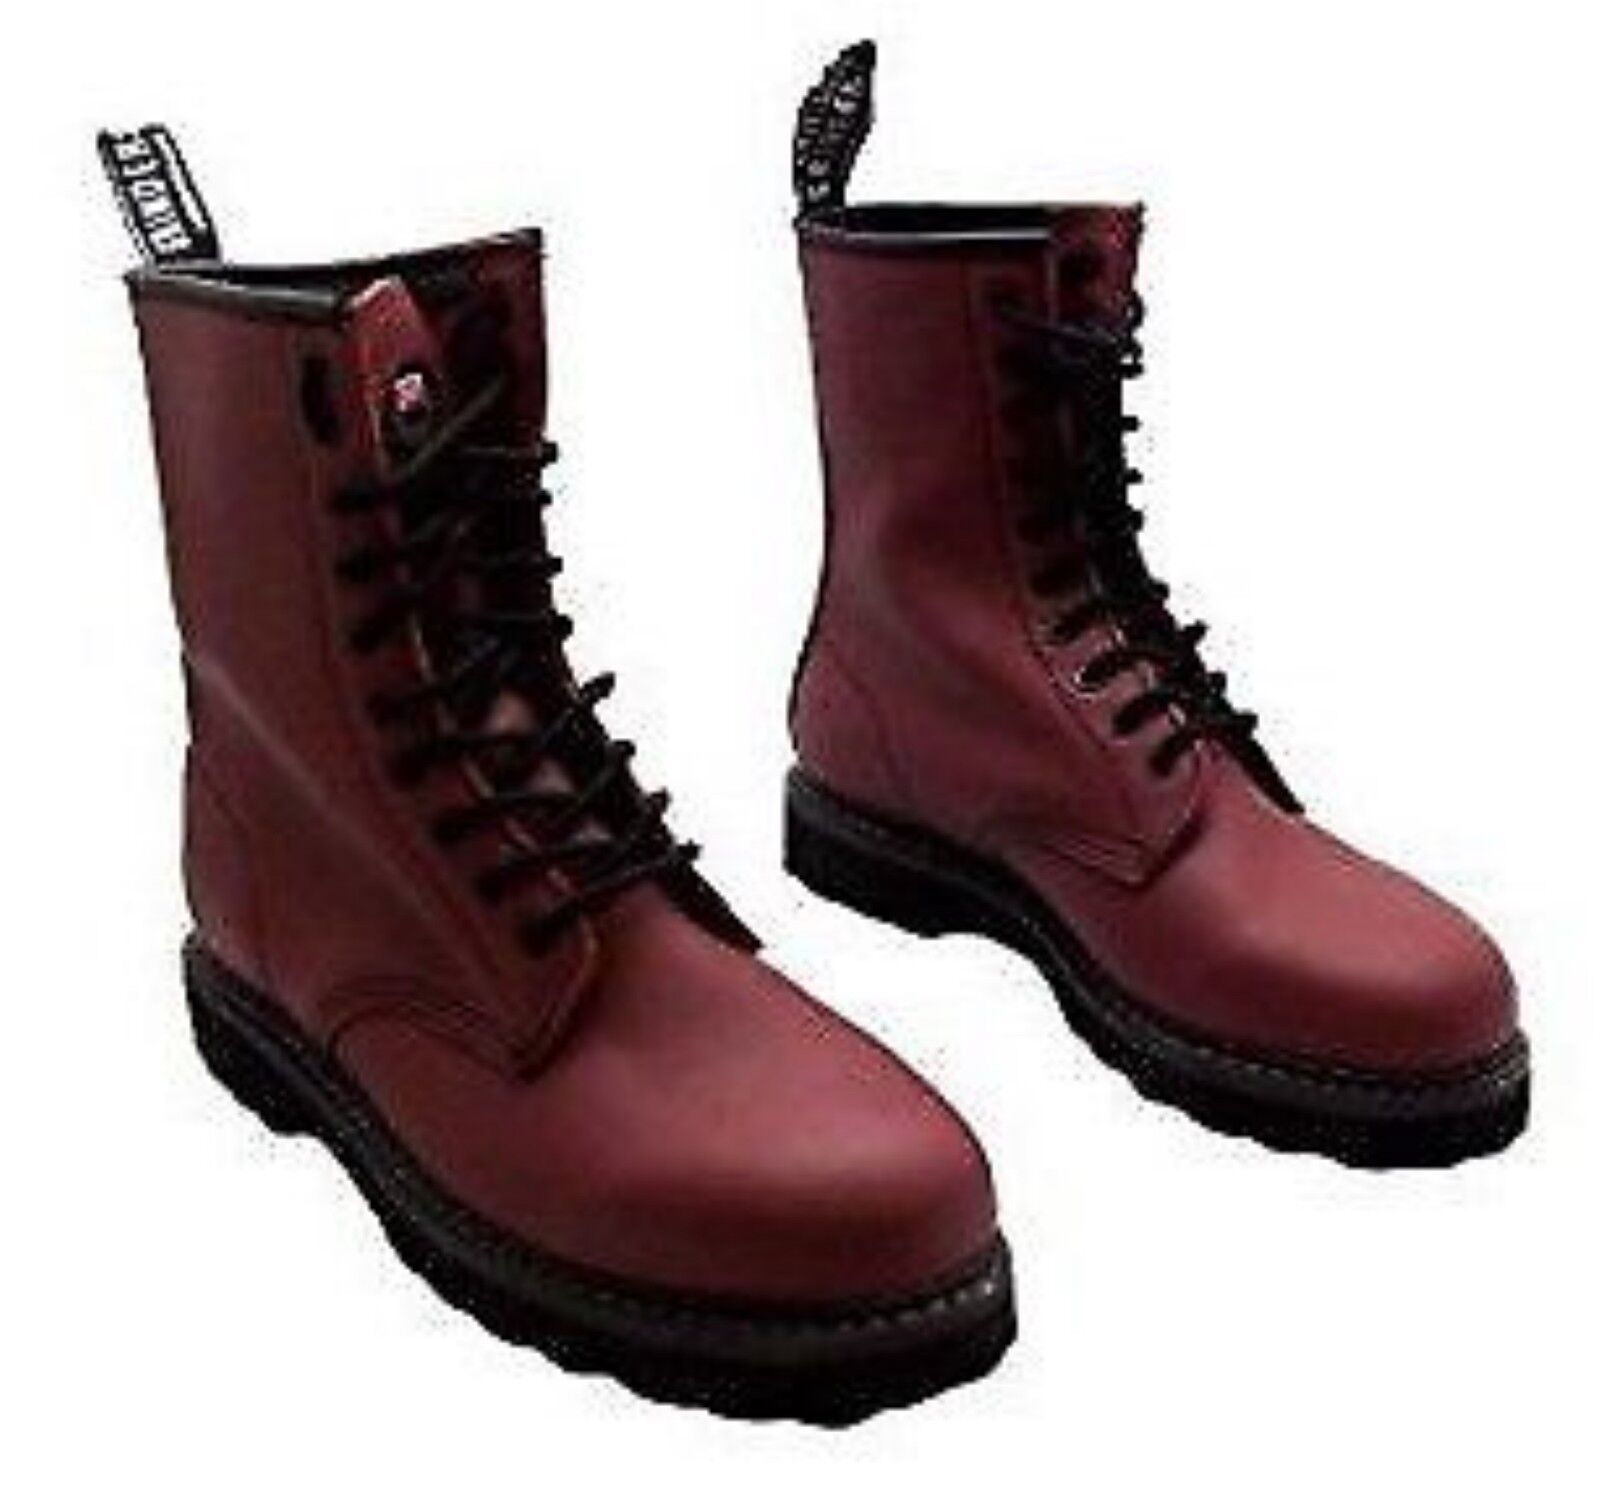 Grinders Albert Red Cherry Leather Combat Boots 8 Eyelet  Derby Boot Punk